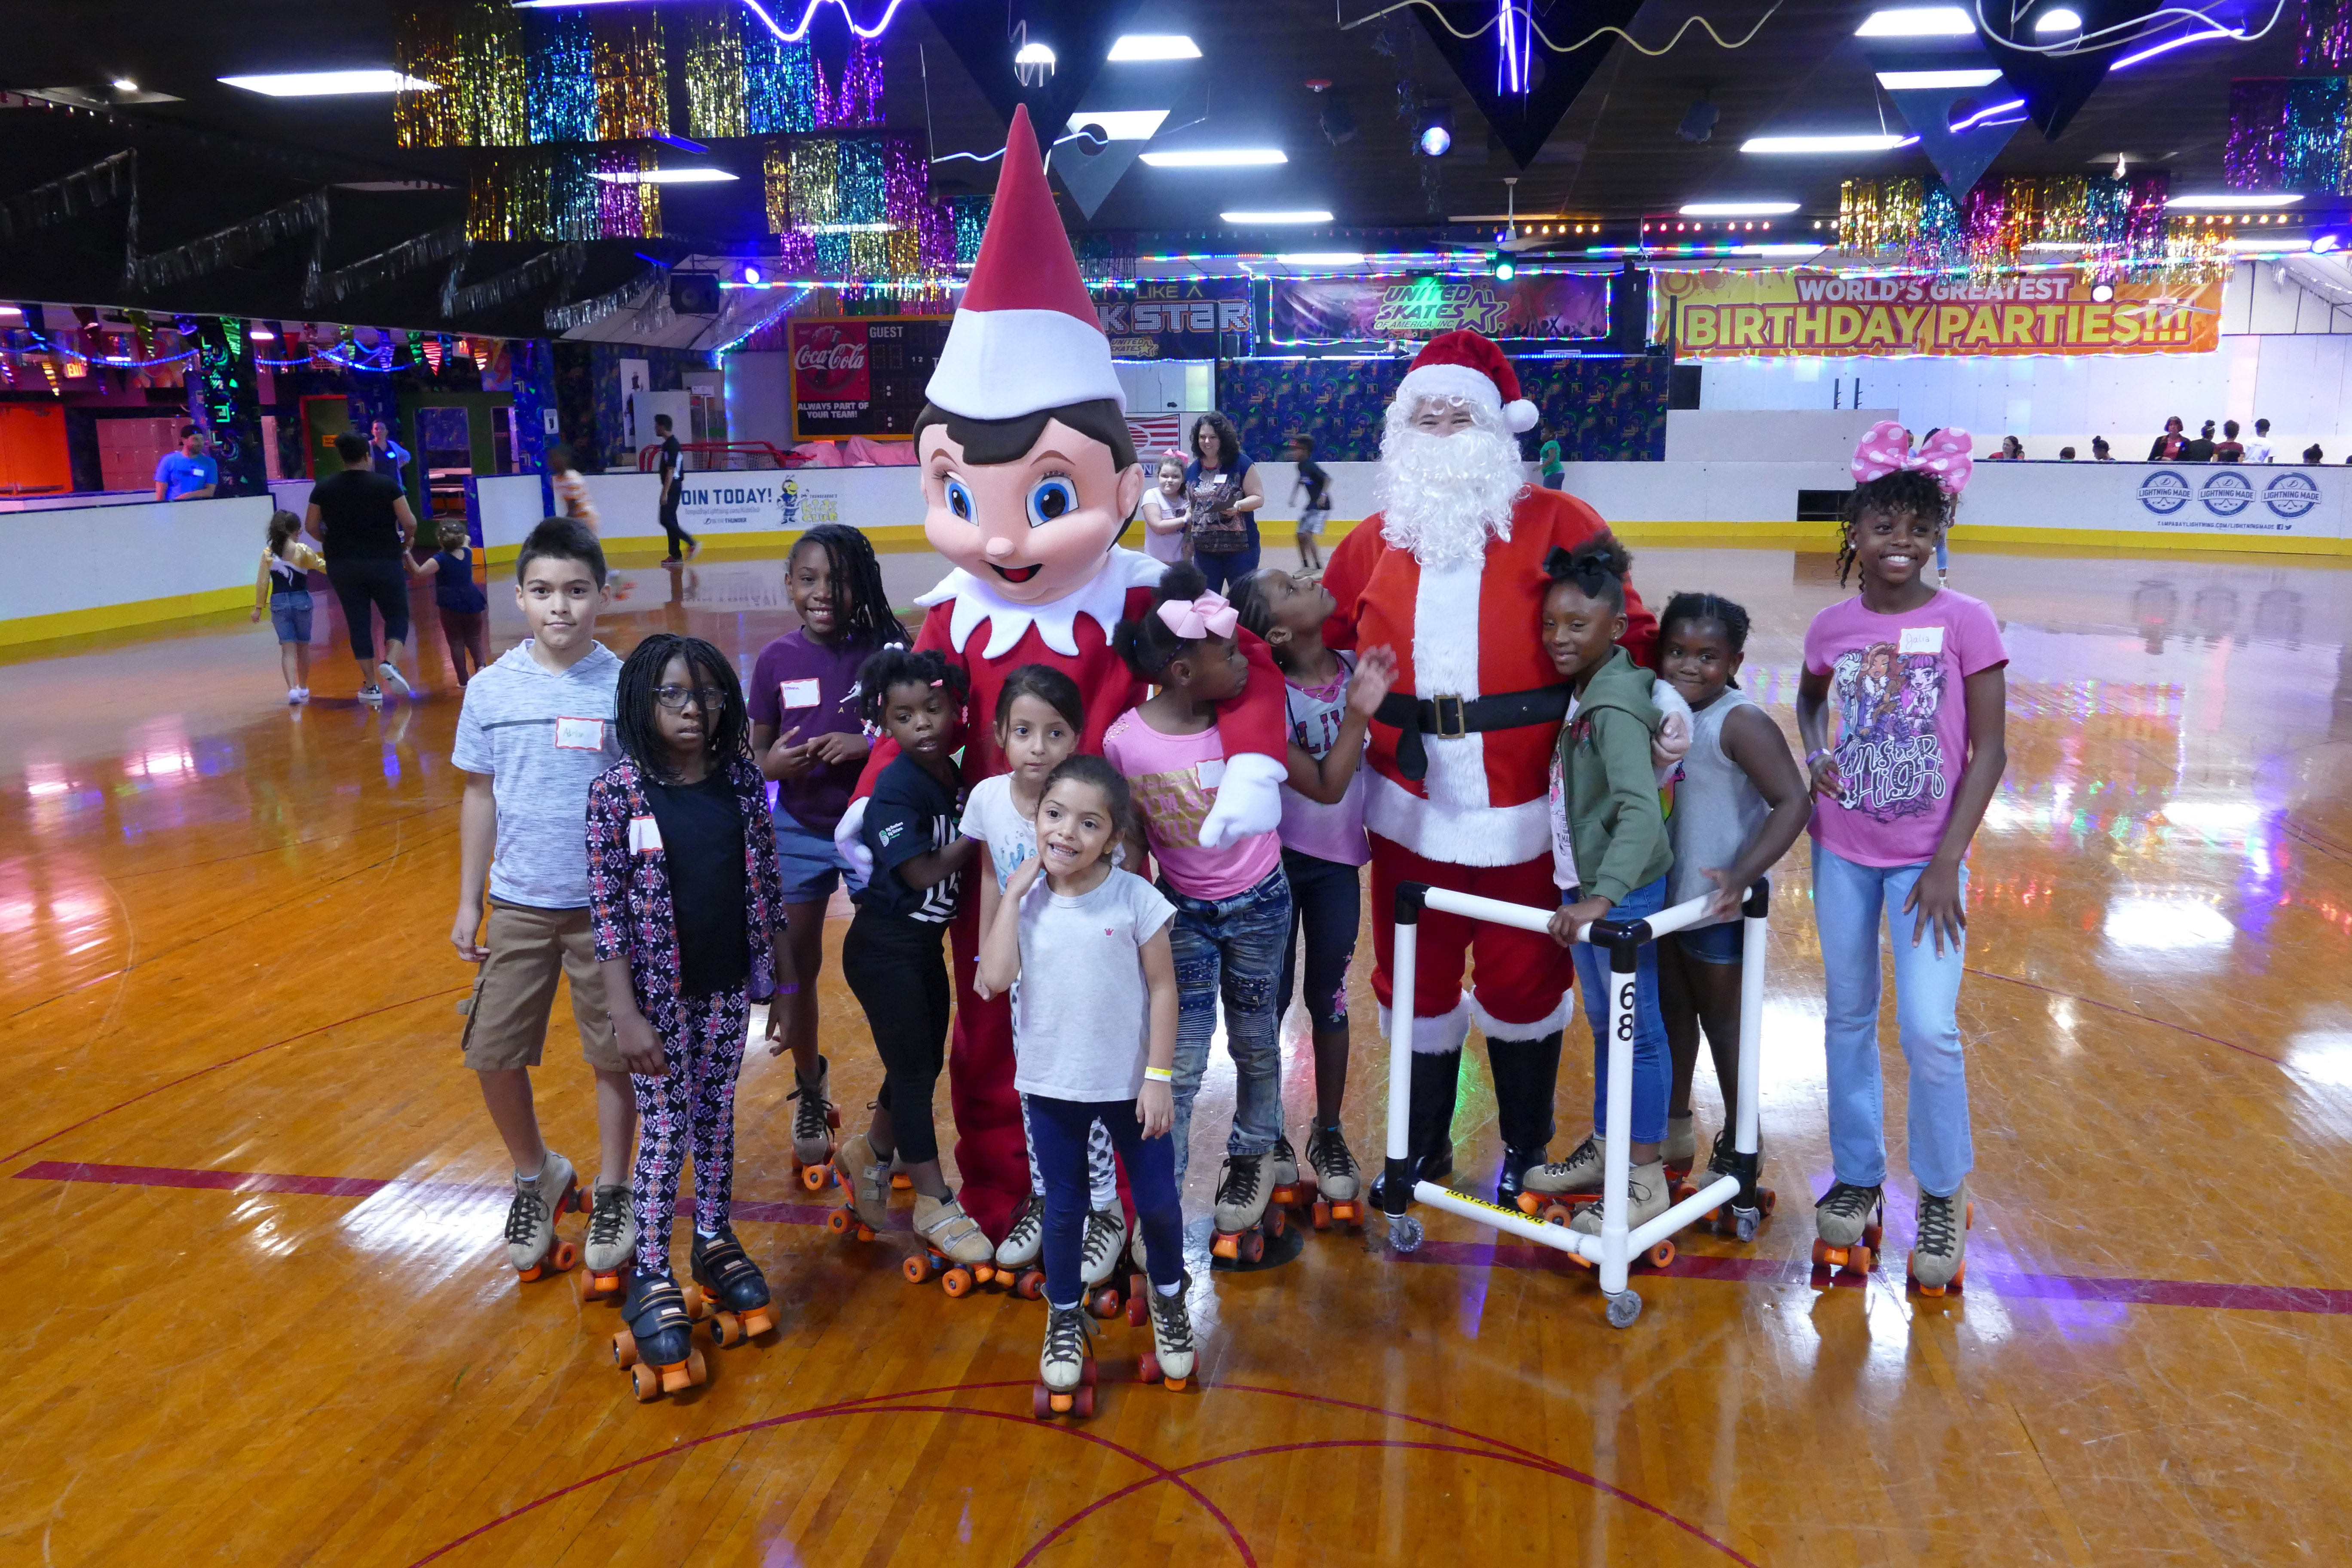 Matches Celebrated the Holidays at Annual Hillsborough Holiday Party